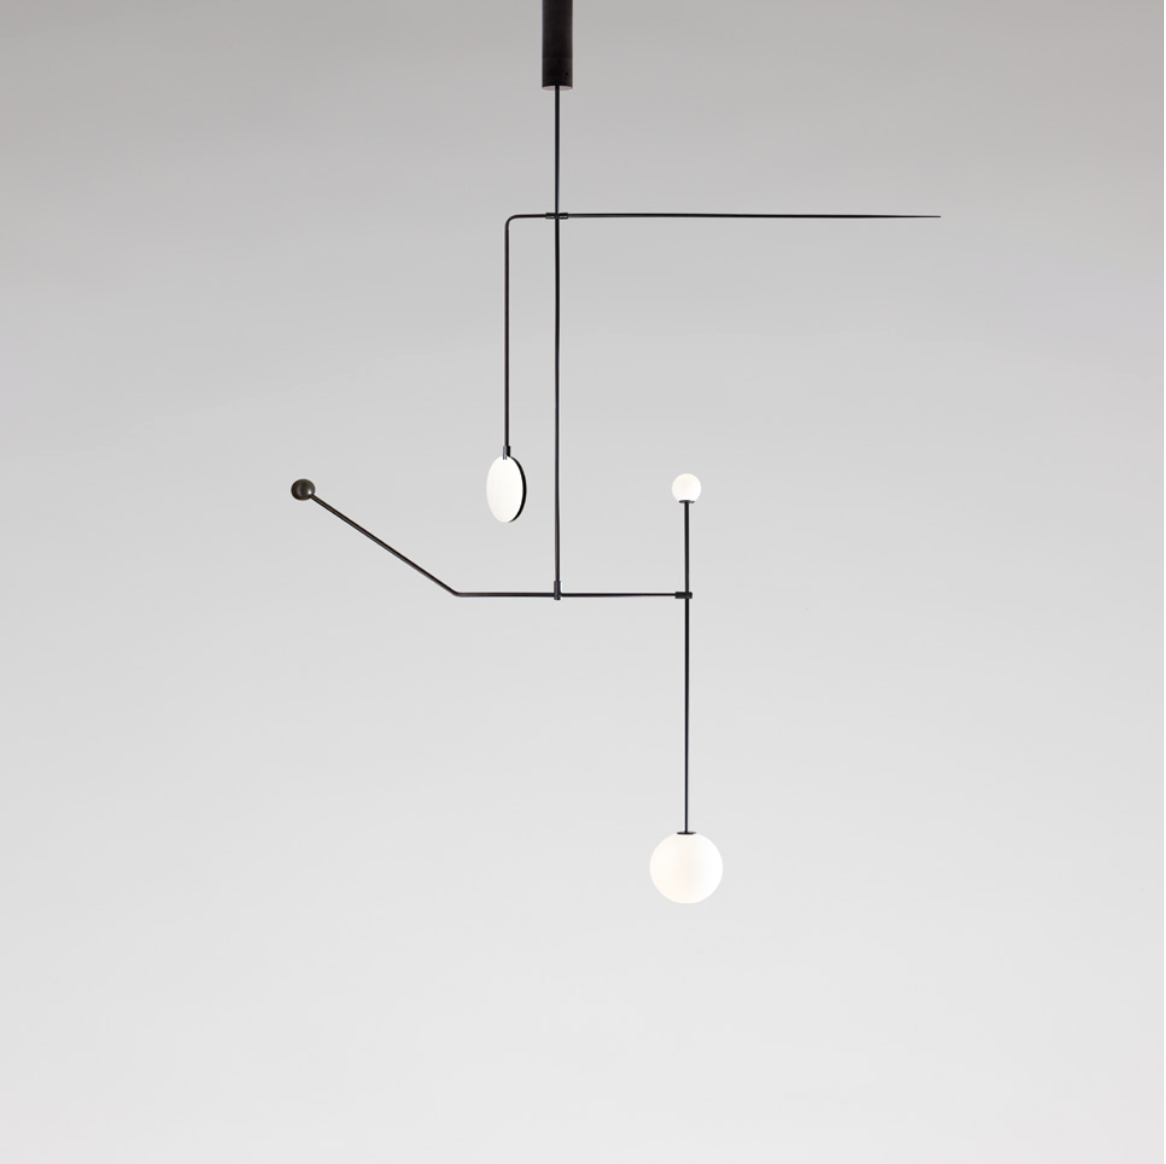 Mobile Chandelier 6 by Michael Anastassiades